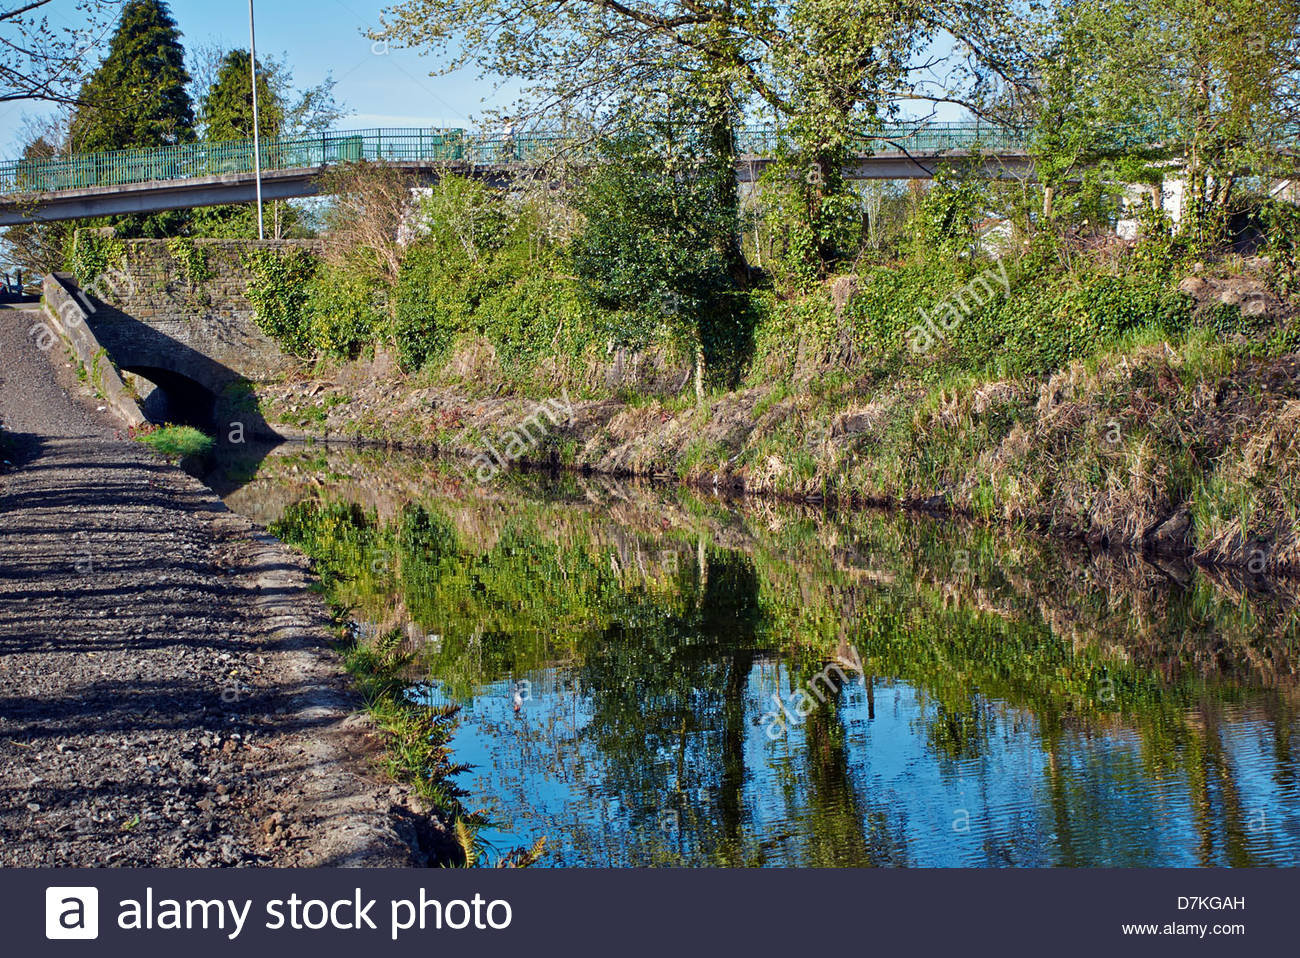 neath tennent canal and towpath under a stone bridge and footbridge - Stock Image